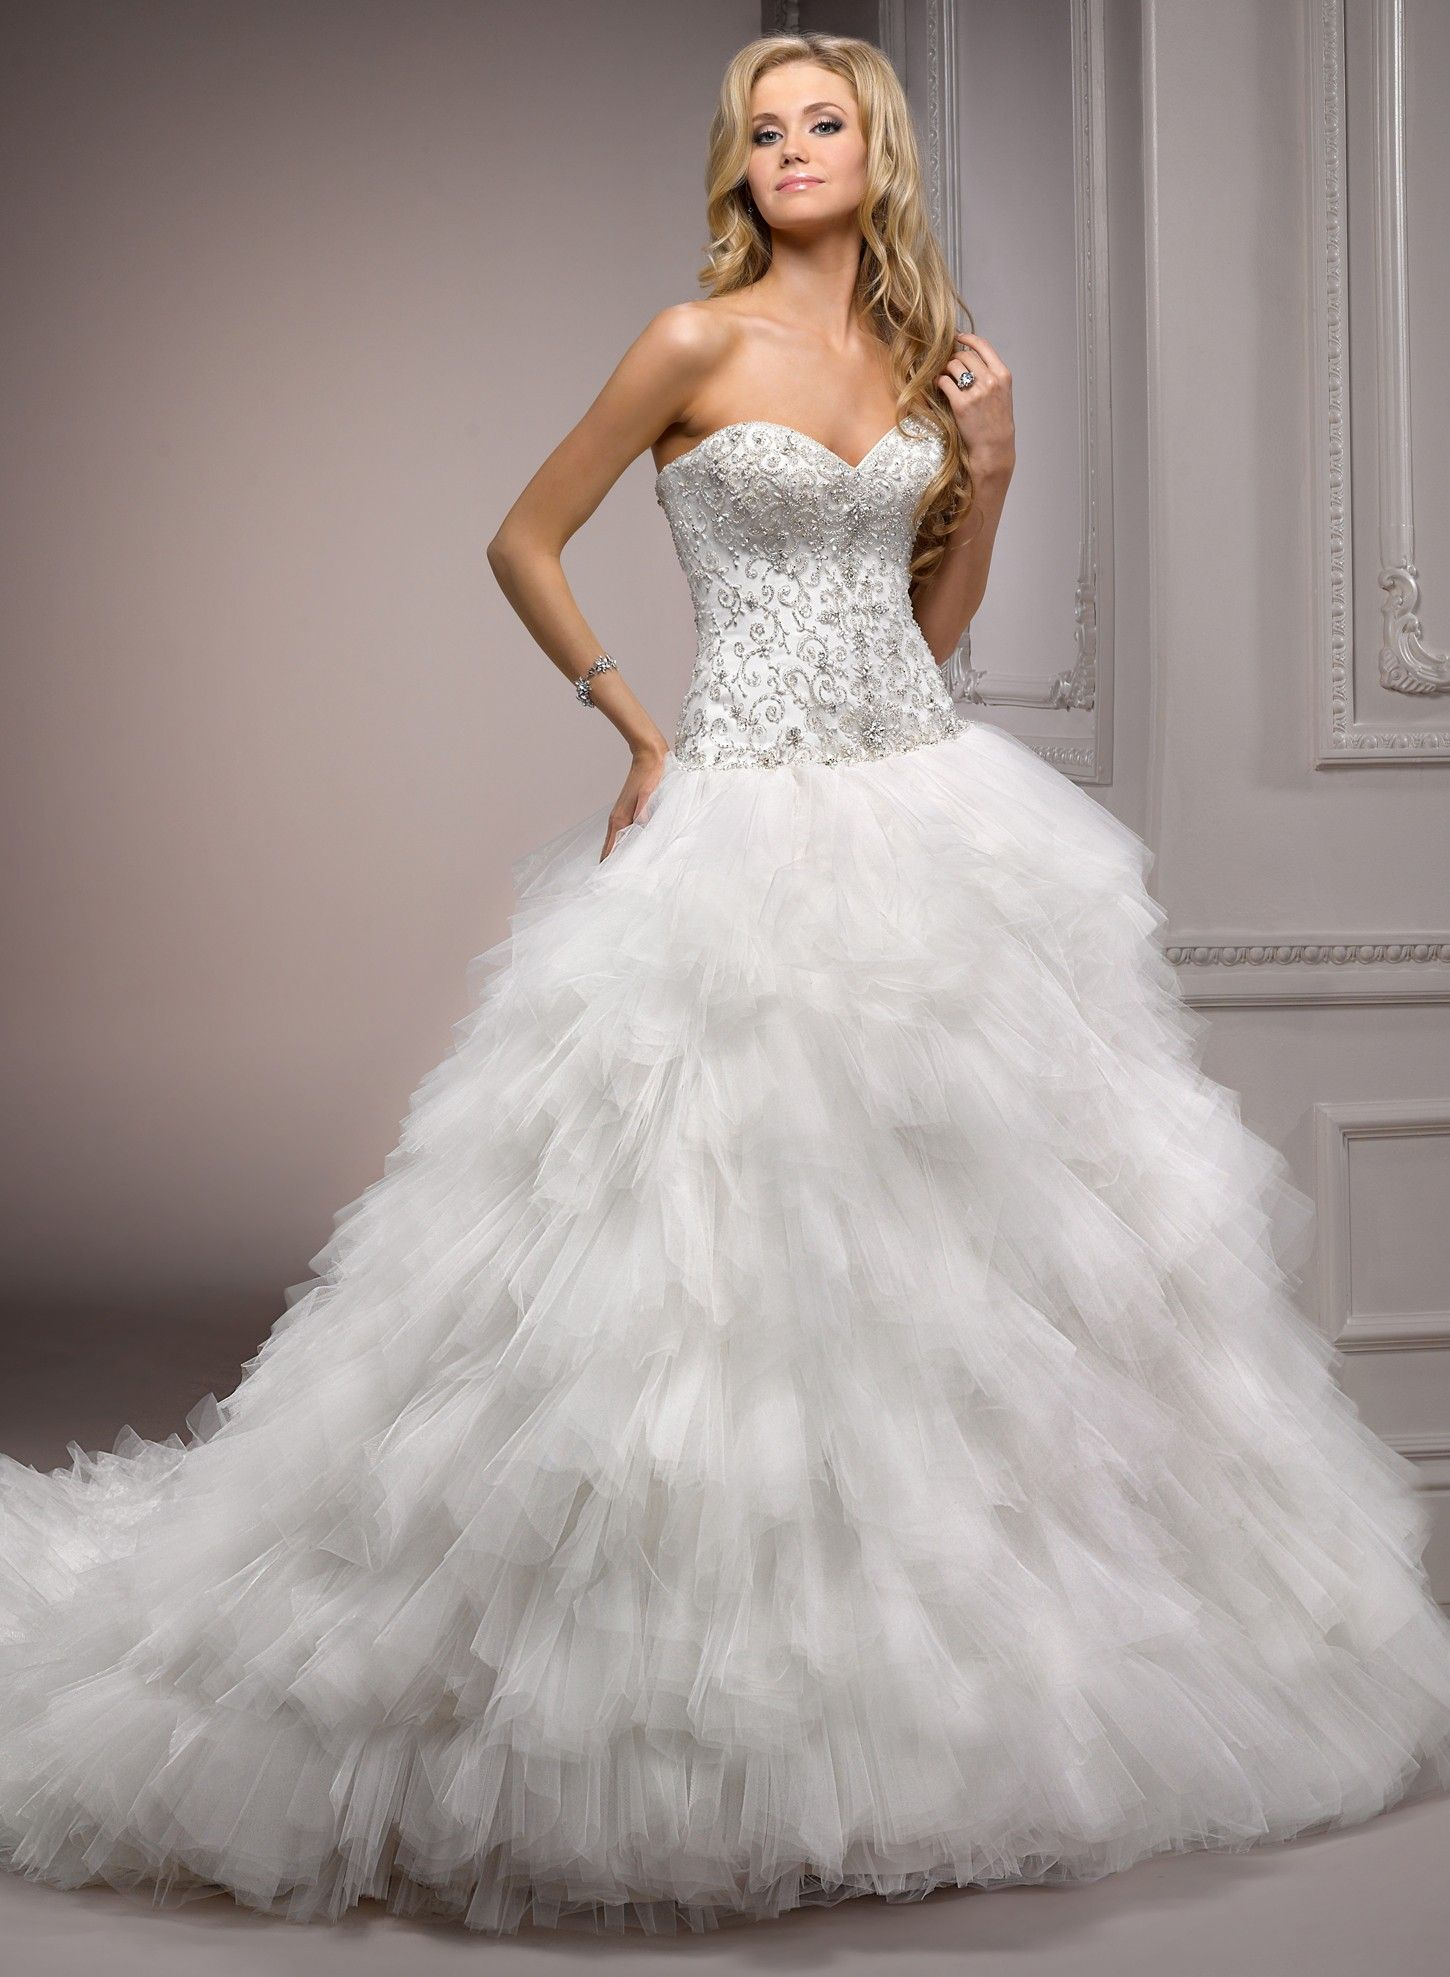 17 best images about ball gown wedding dresses on pinterest casablanca dress wedding and beaded lace